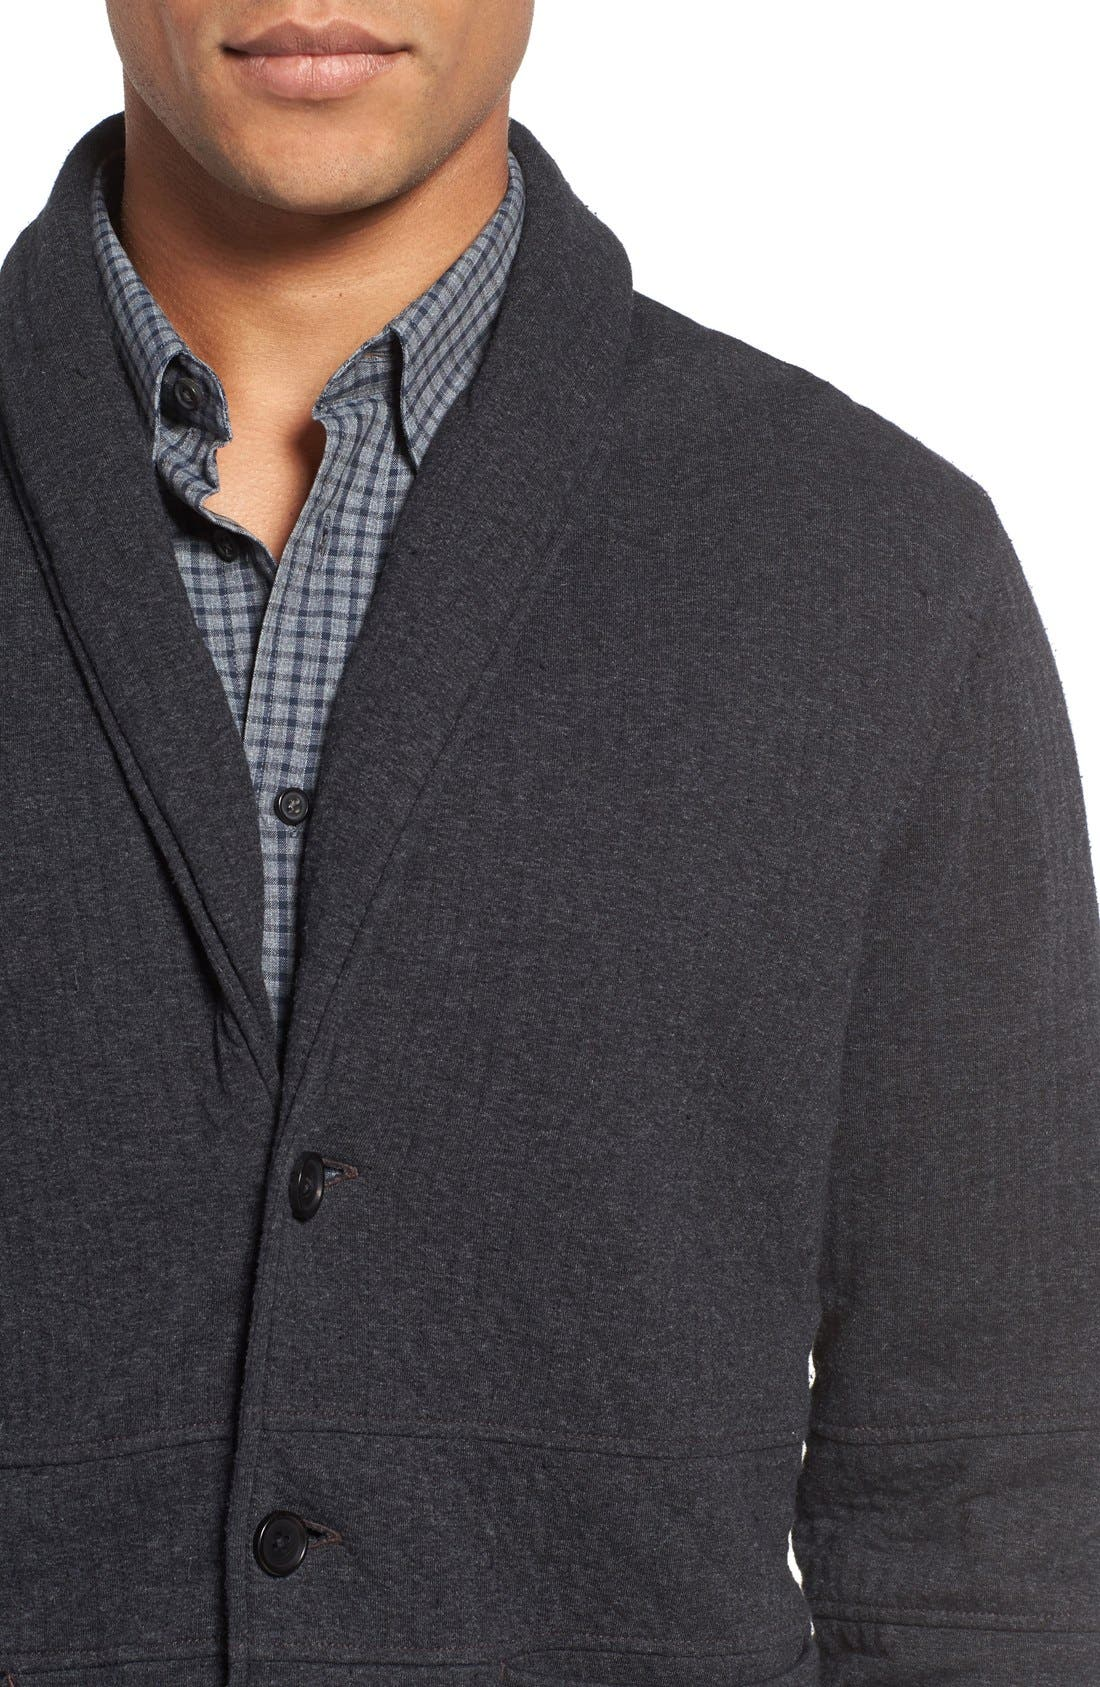 Quilted Shawl Collar Sweater,                             Alternate thumbnail 9, color,